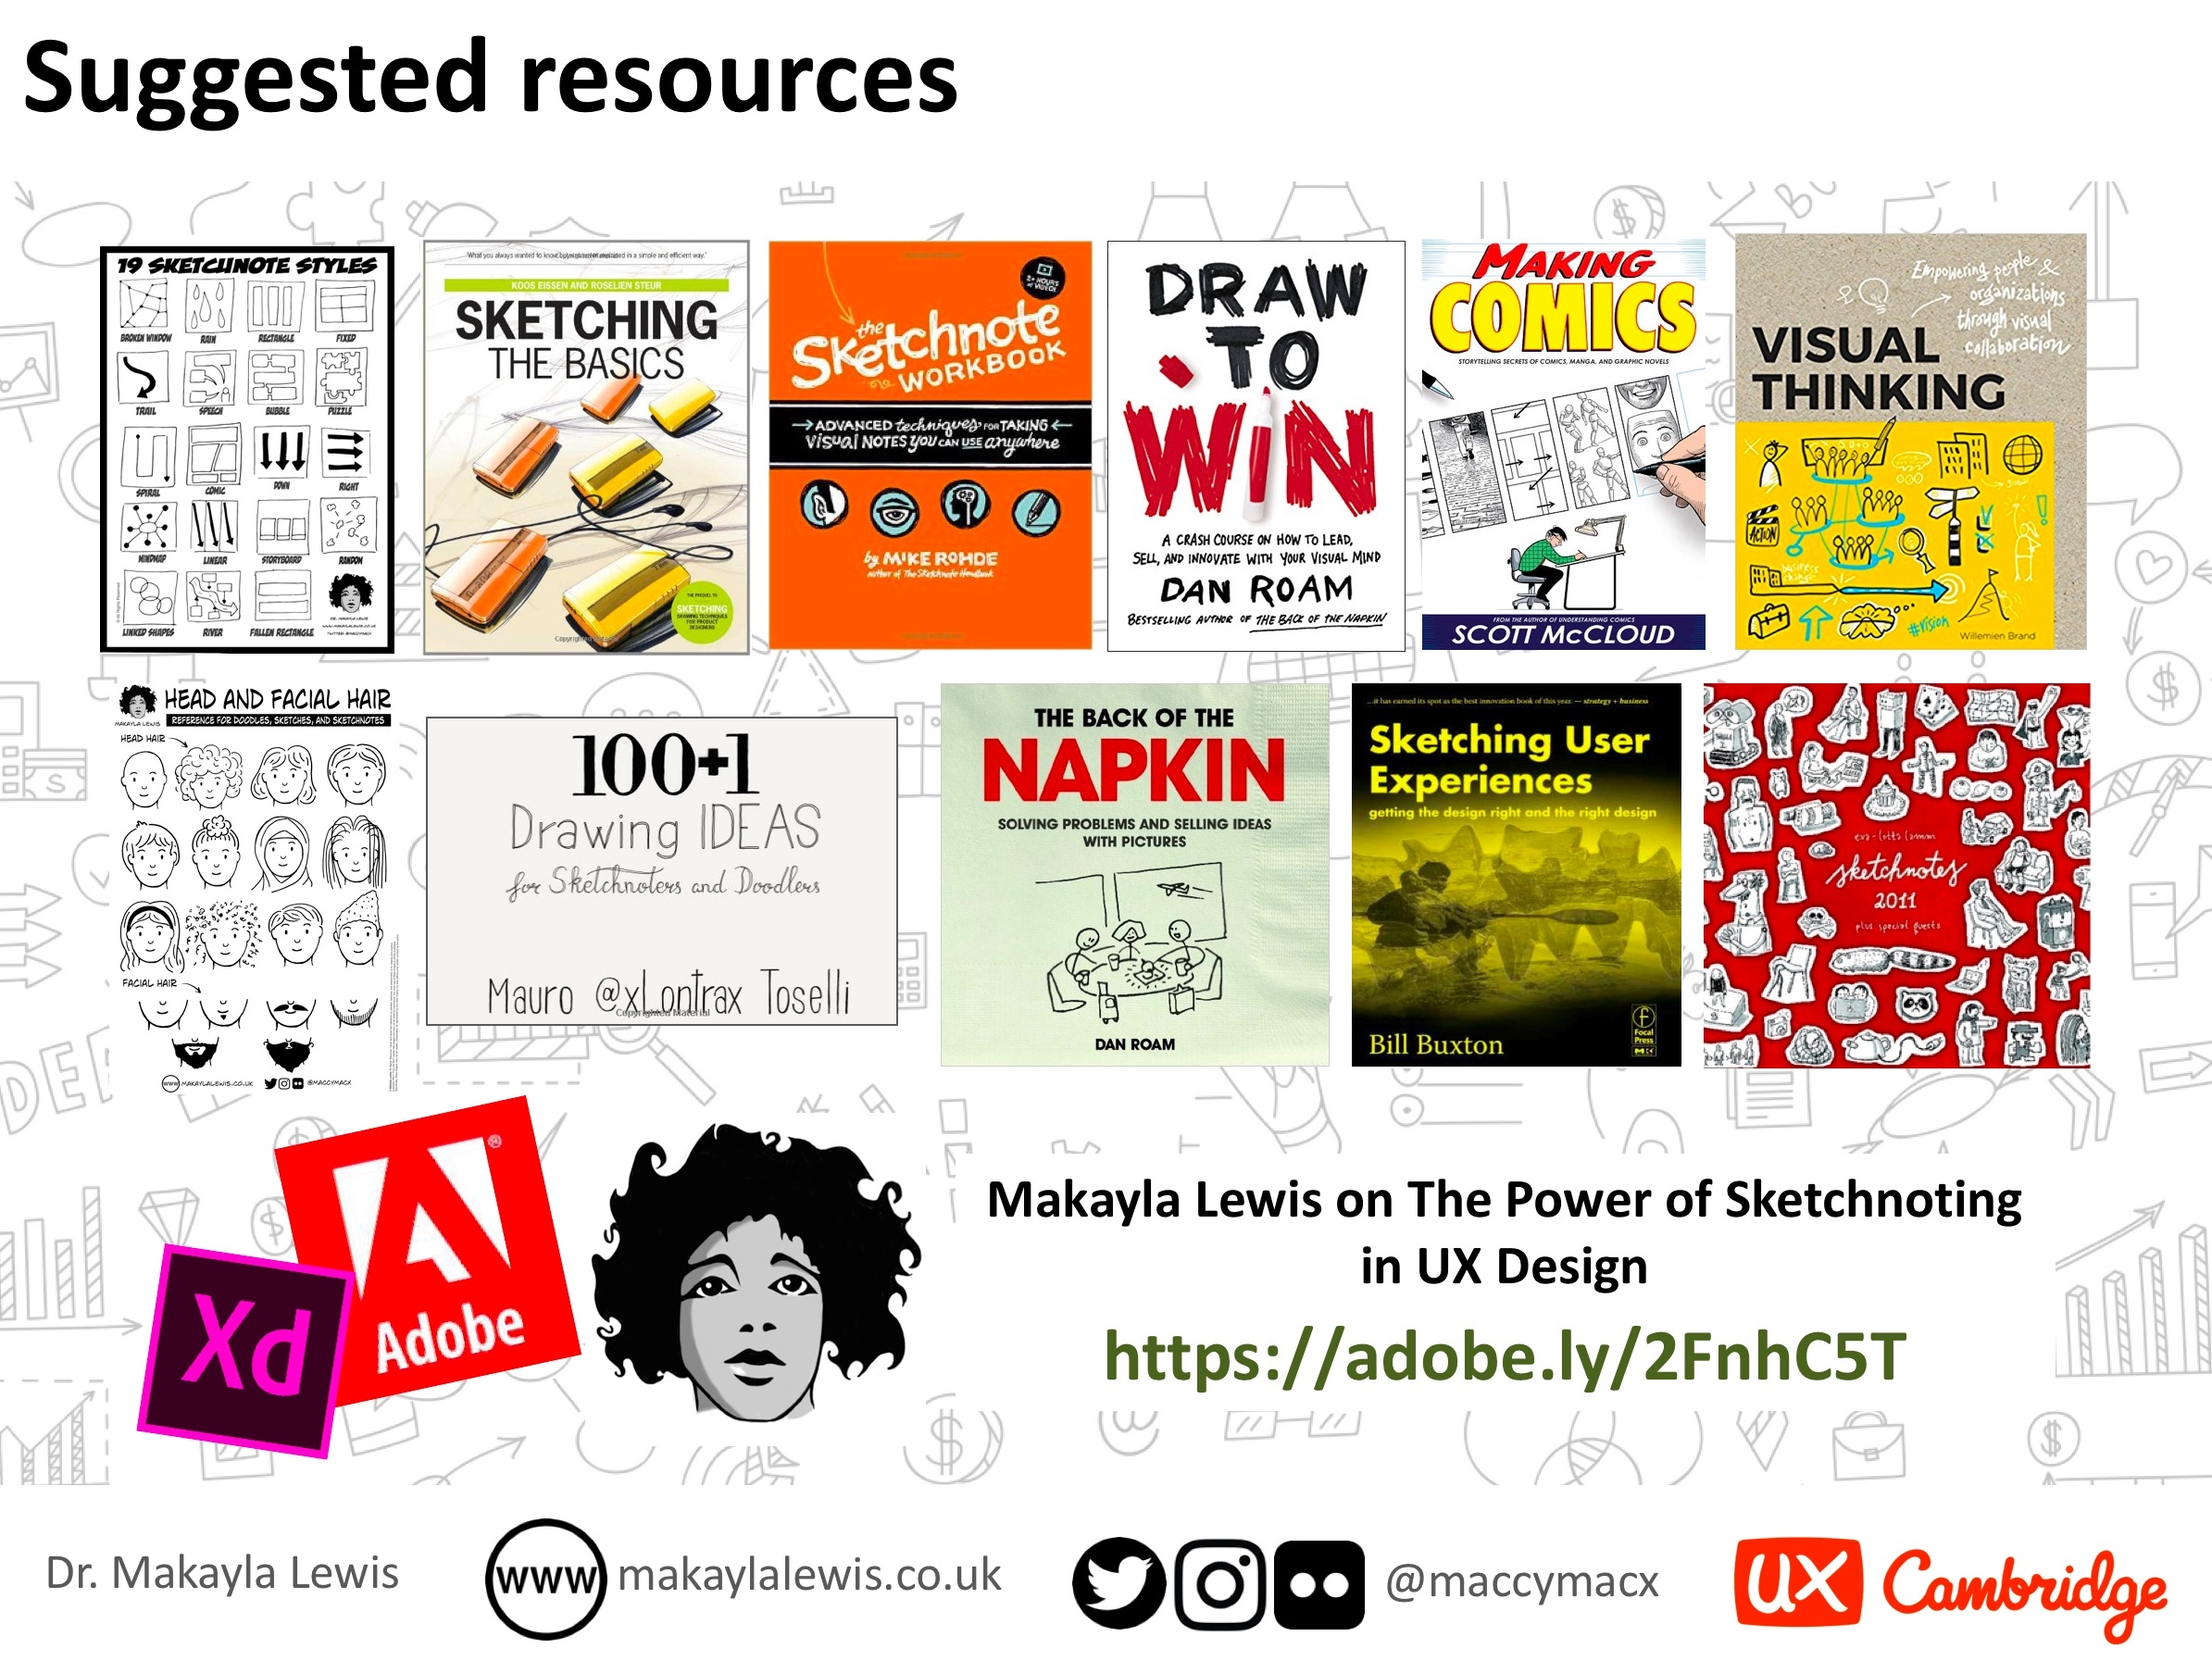 UX Cambridge 2018: Sketchnotes in UX Design cheat sheet and